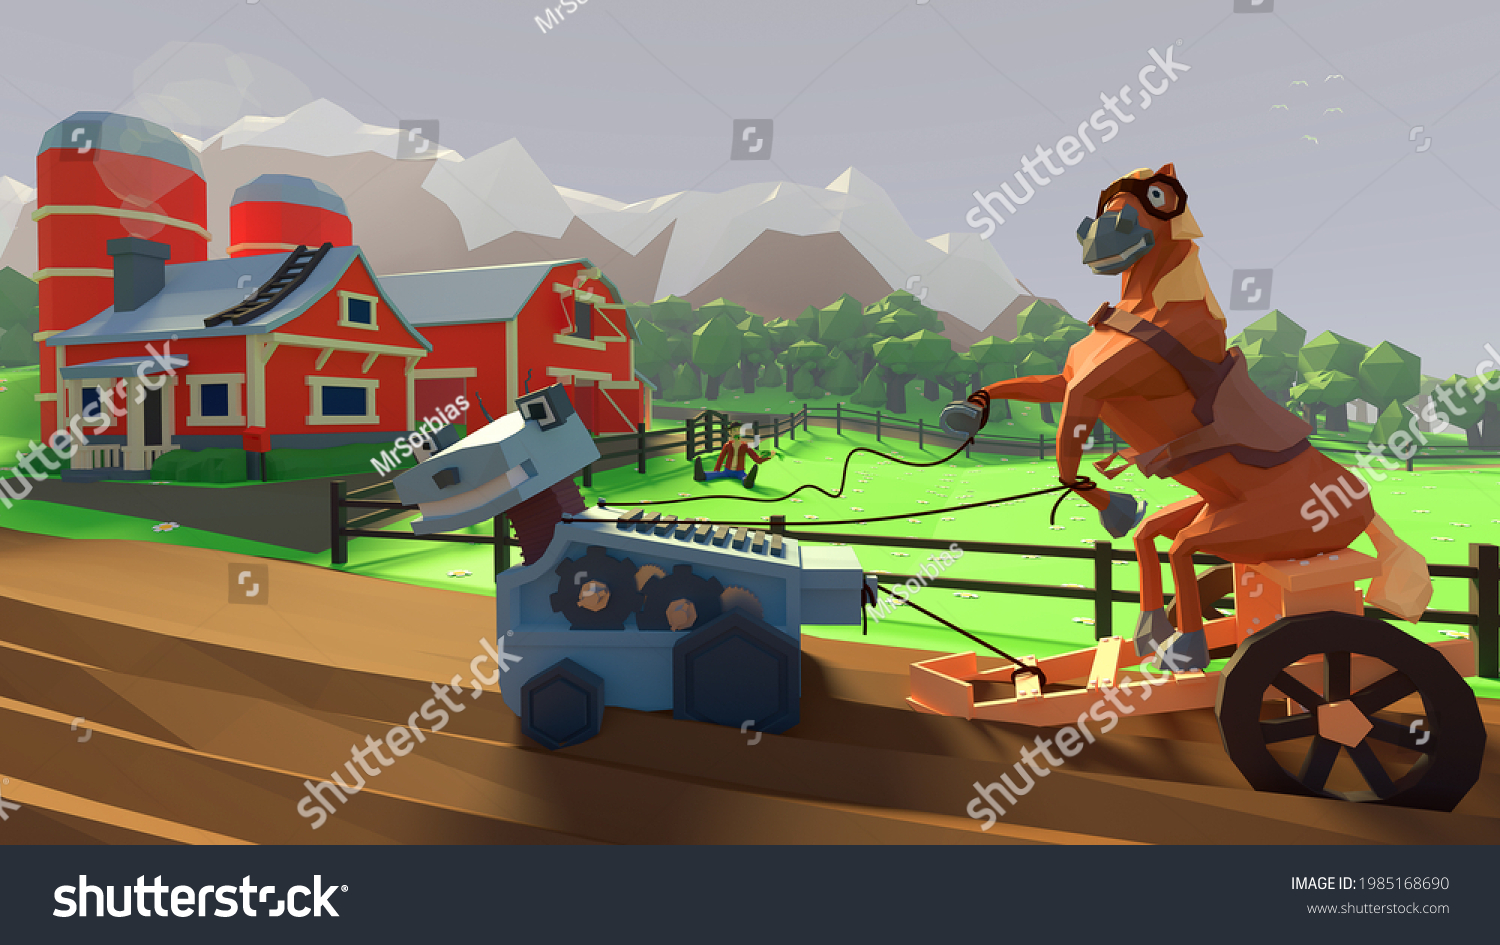 stock-photo--d-illustration-of-a-horse-d